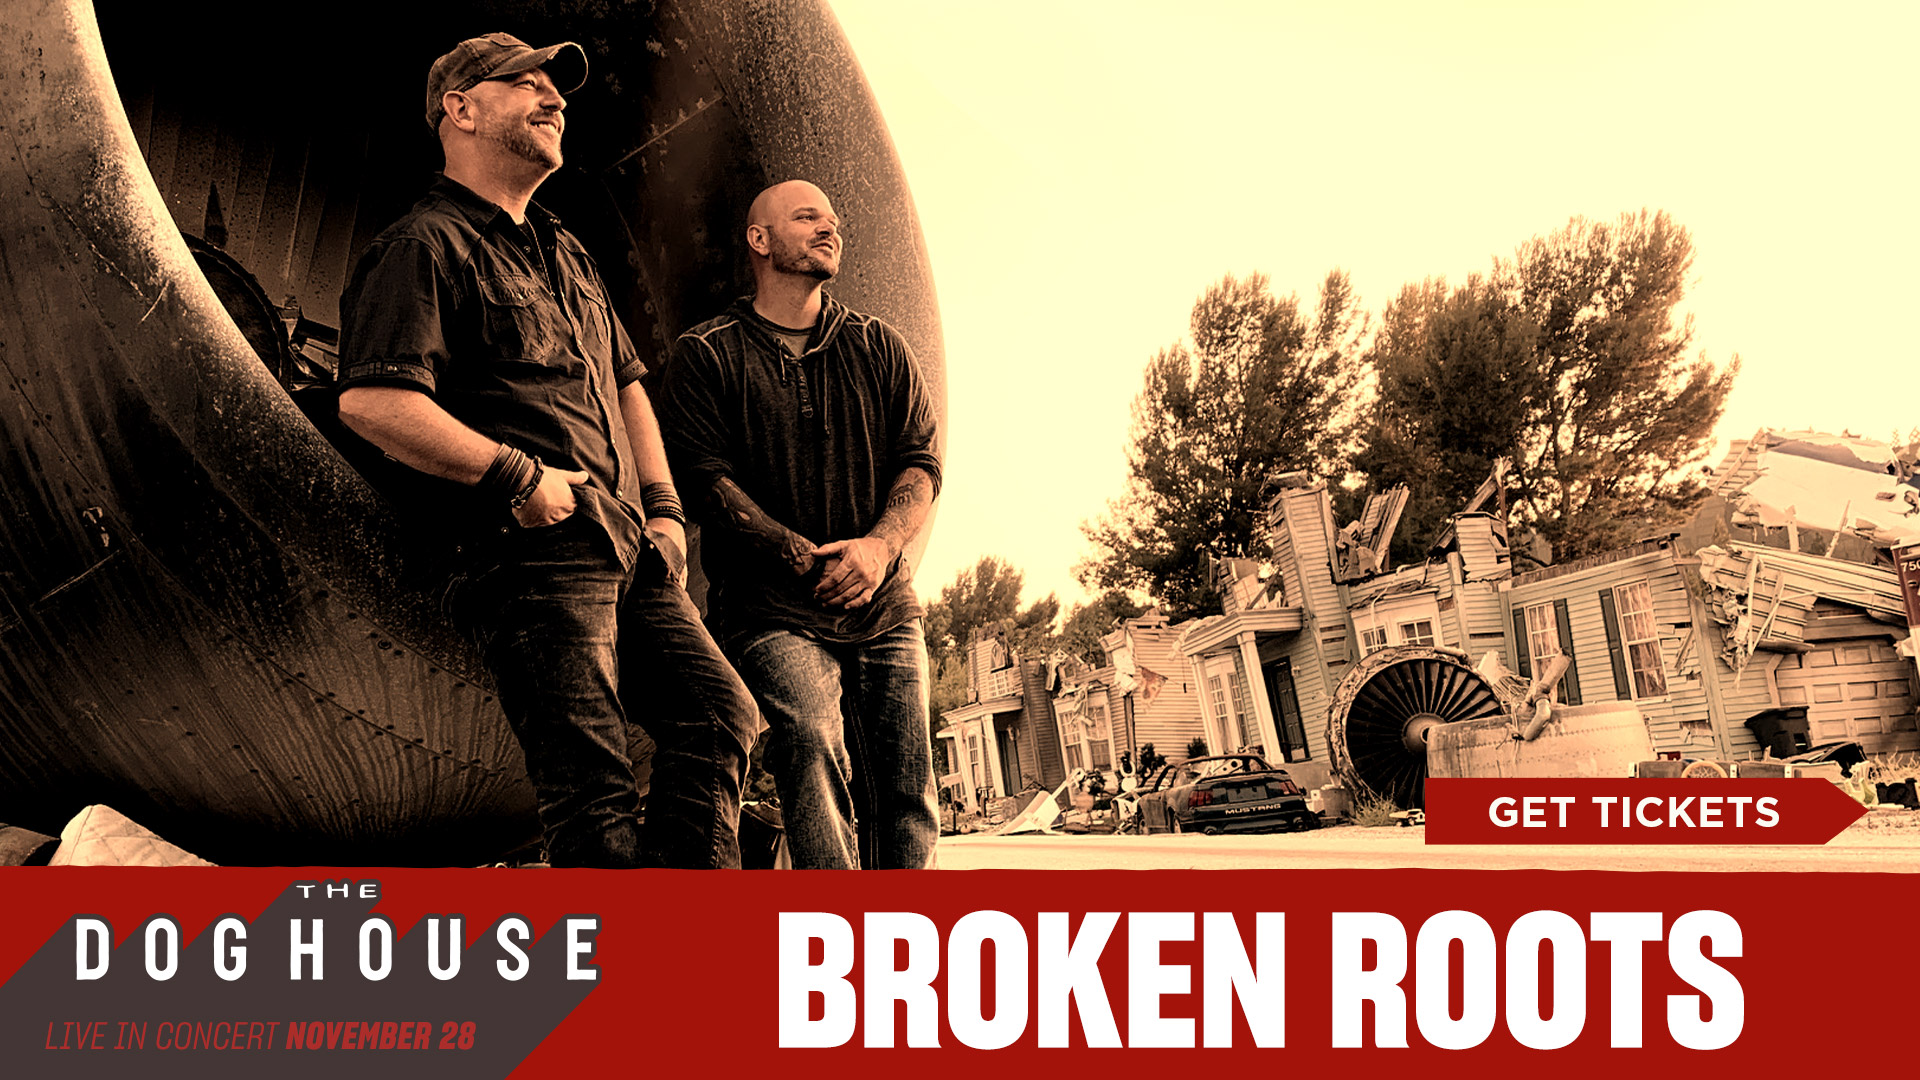 Broken Roots - Get Tickets